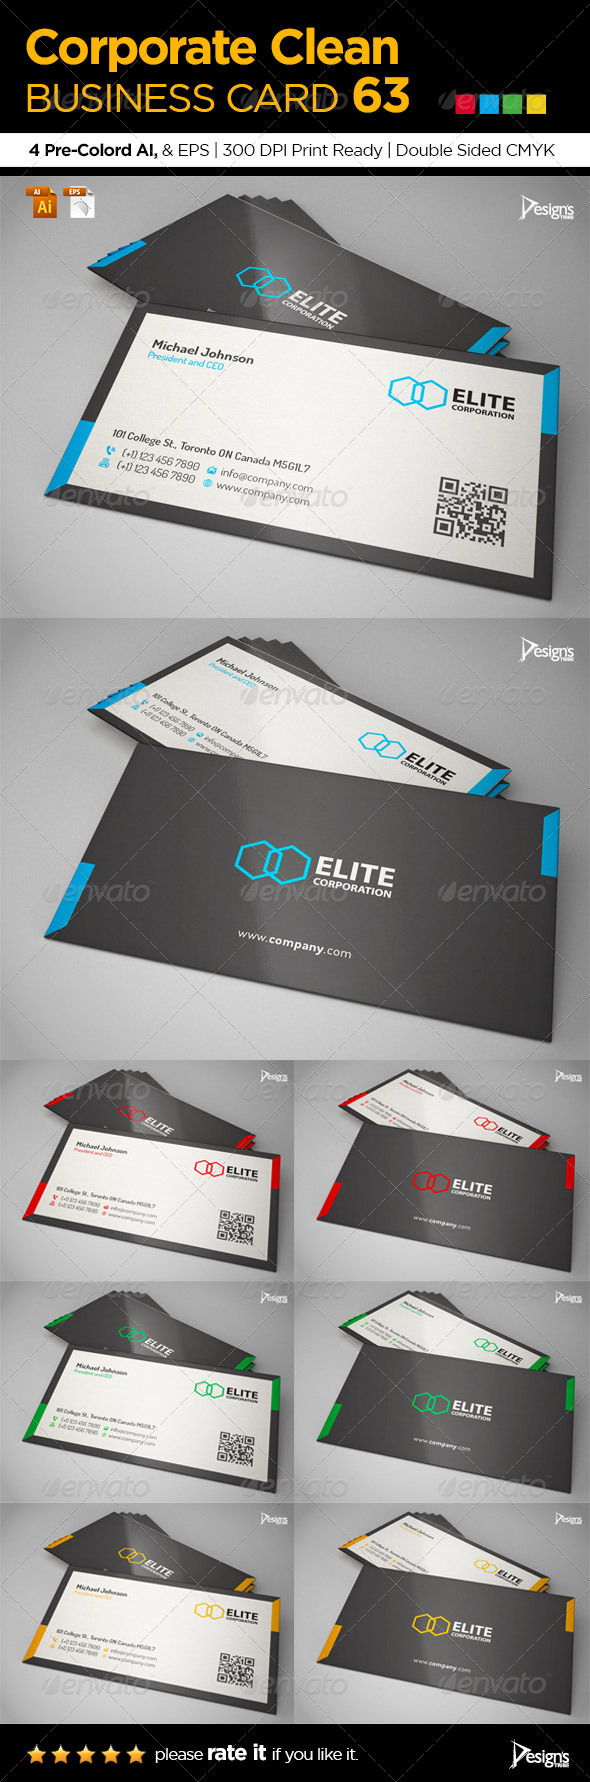 GraphicRiver Corporate Clean Business Card 63 6507621